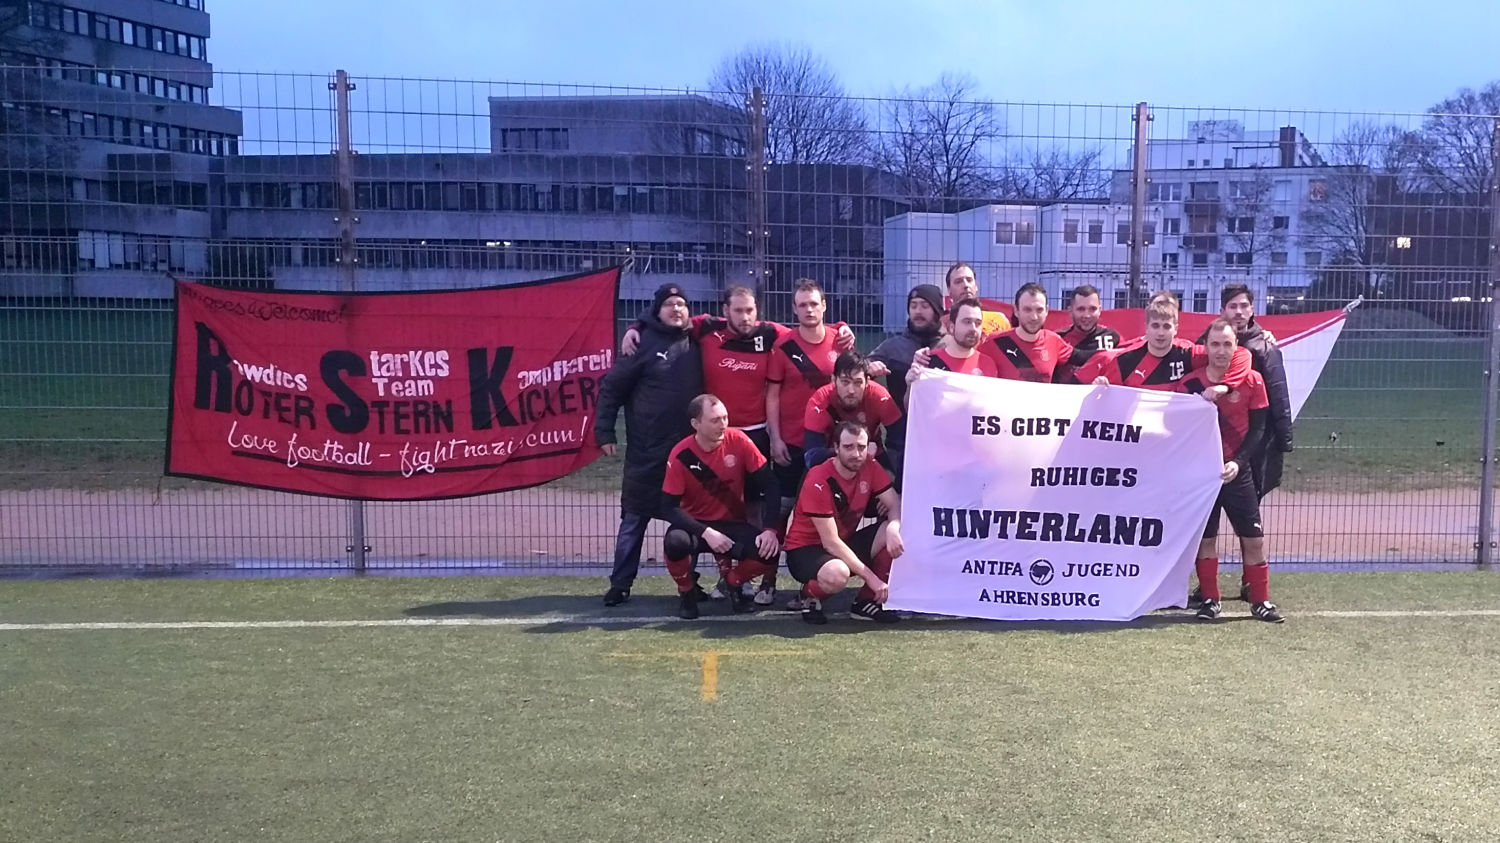 Roter Stern Kickers 05 Supports Aja Banner